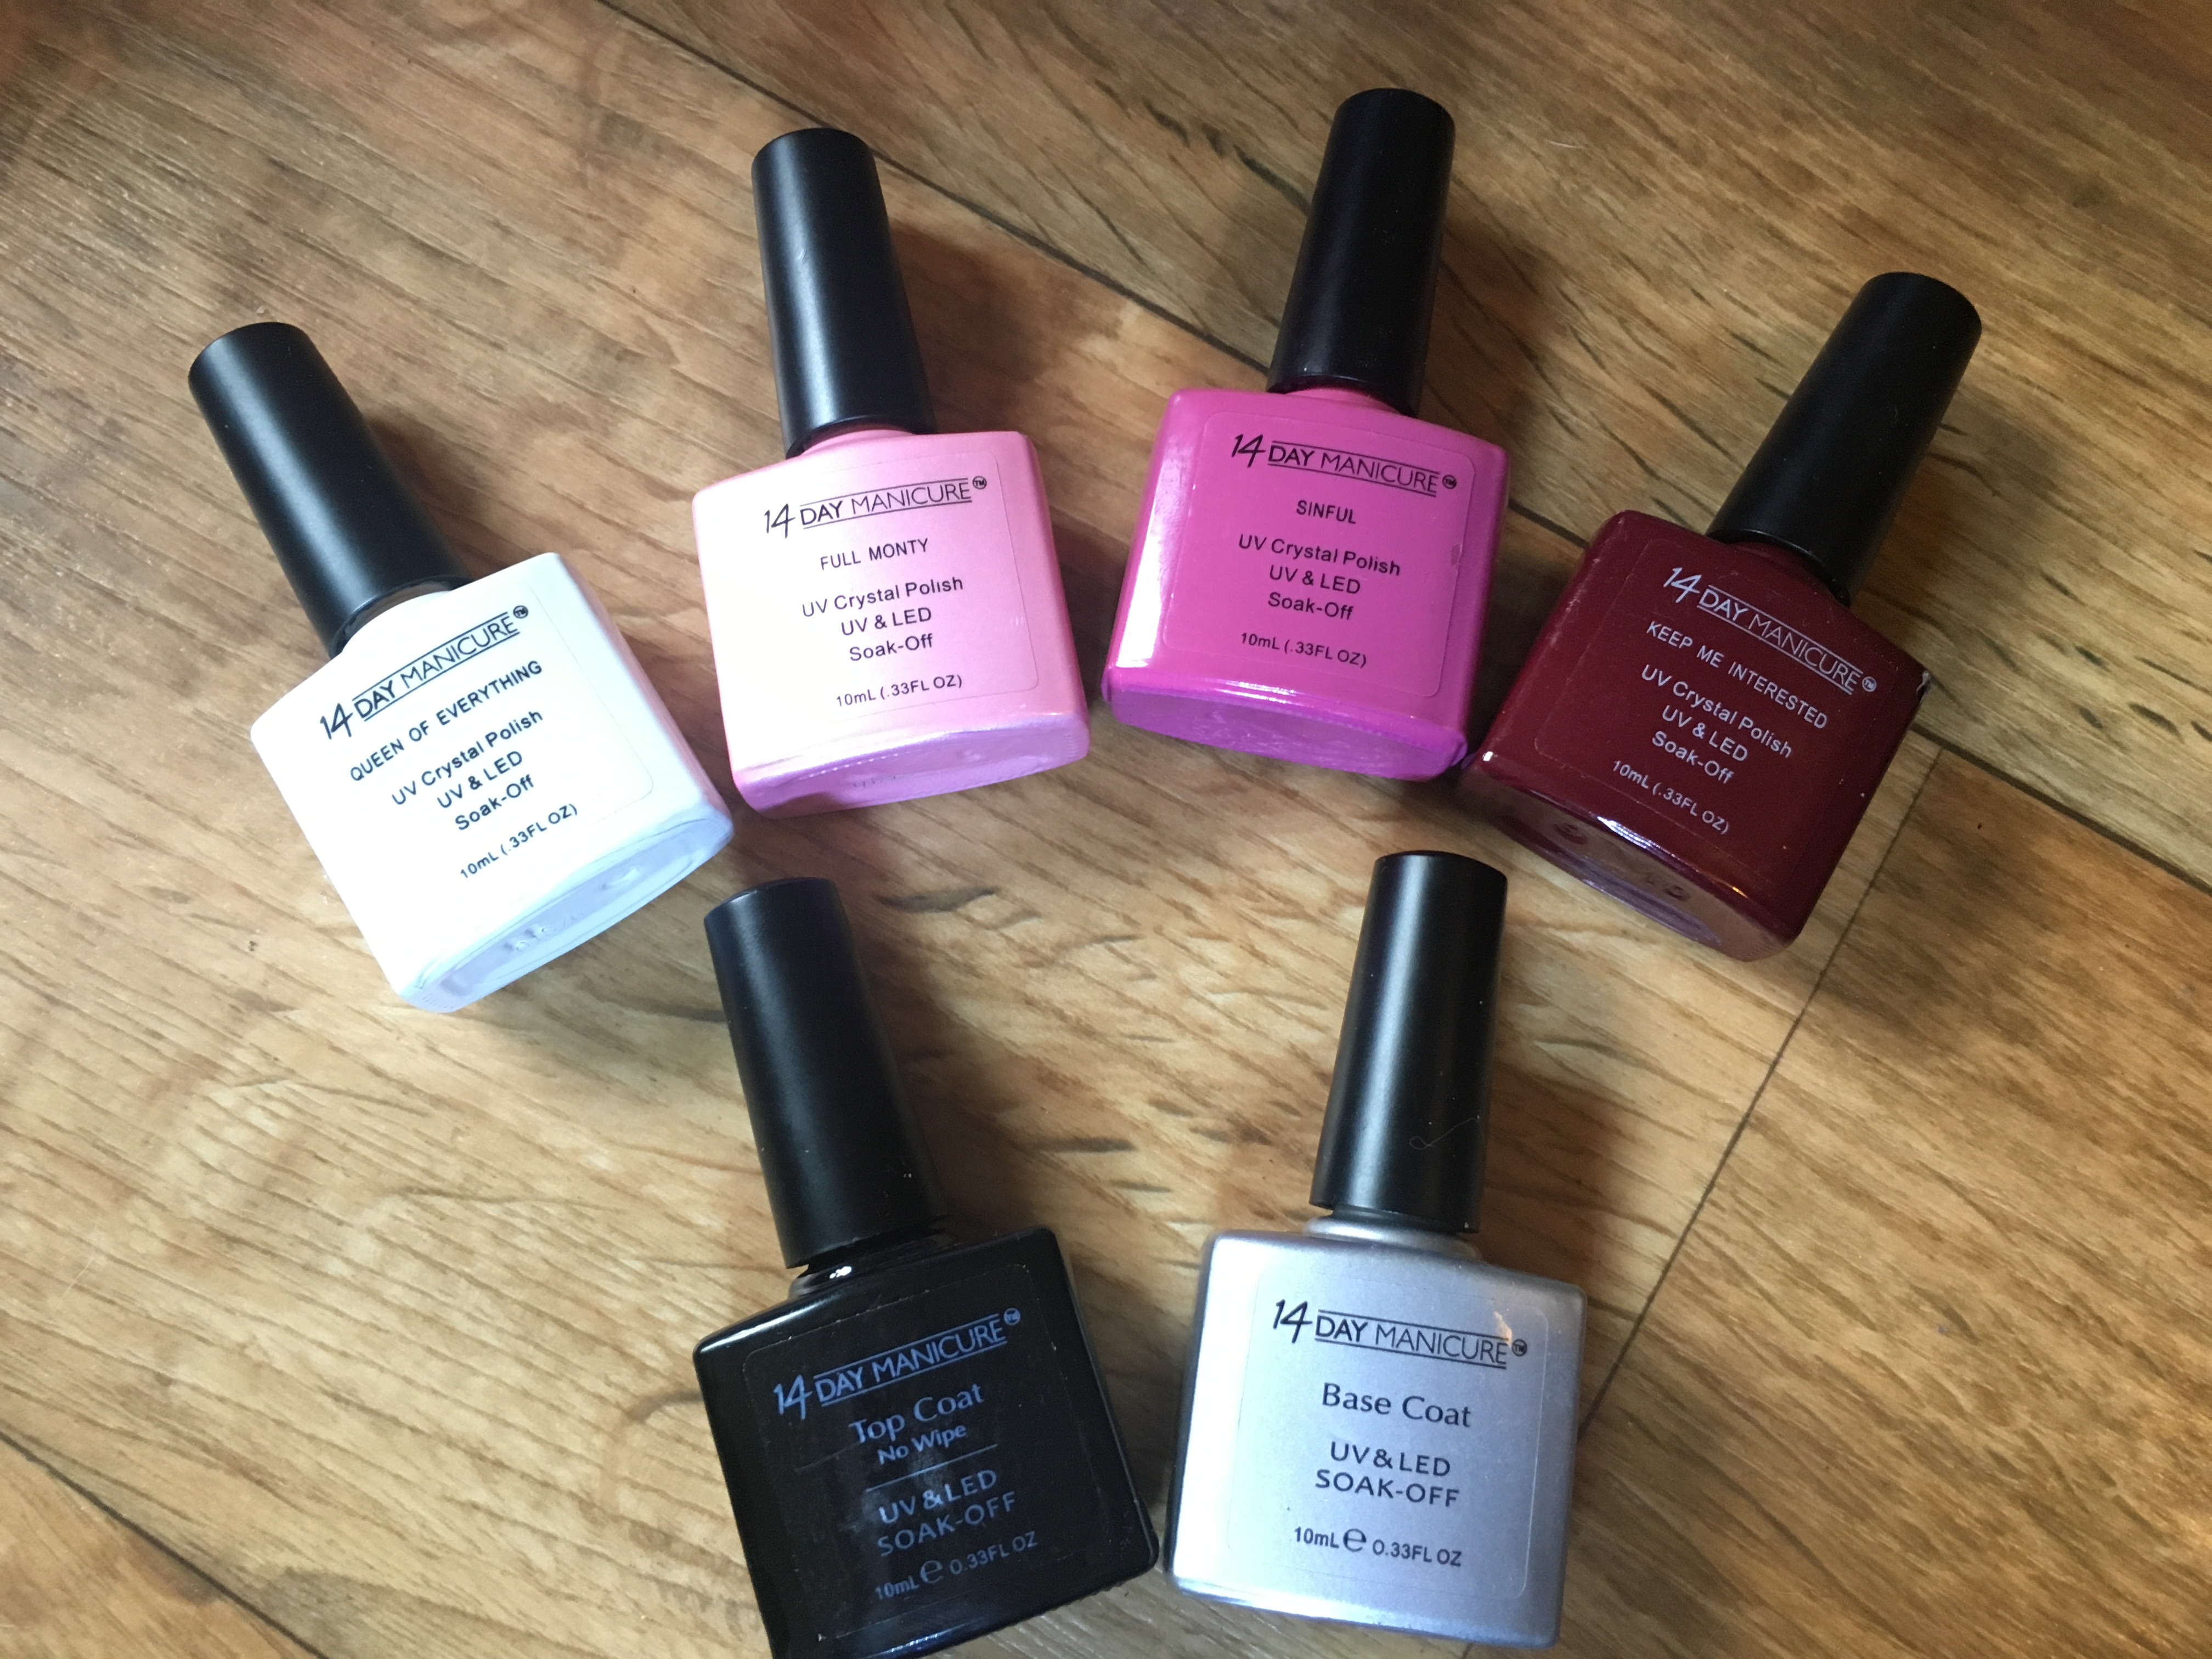 Achieve Beautiful Nails At Home With The 14 Day Manicure UV Gel ...